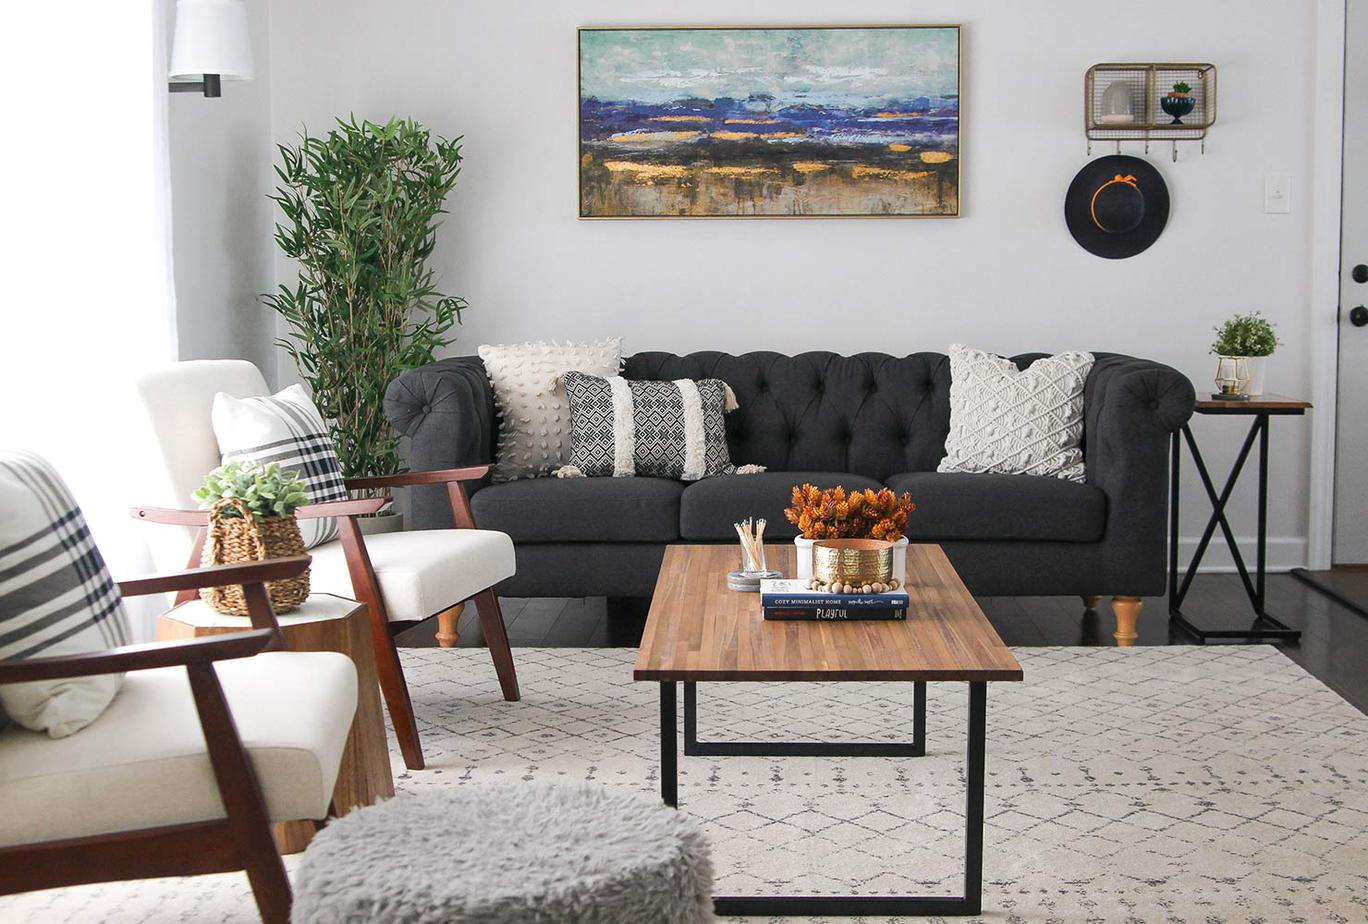 6. Pick furniture with exposed legs by simphome.com